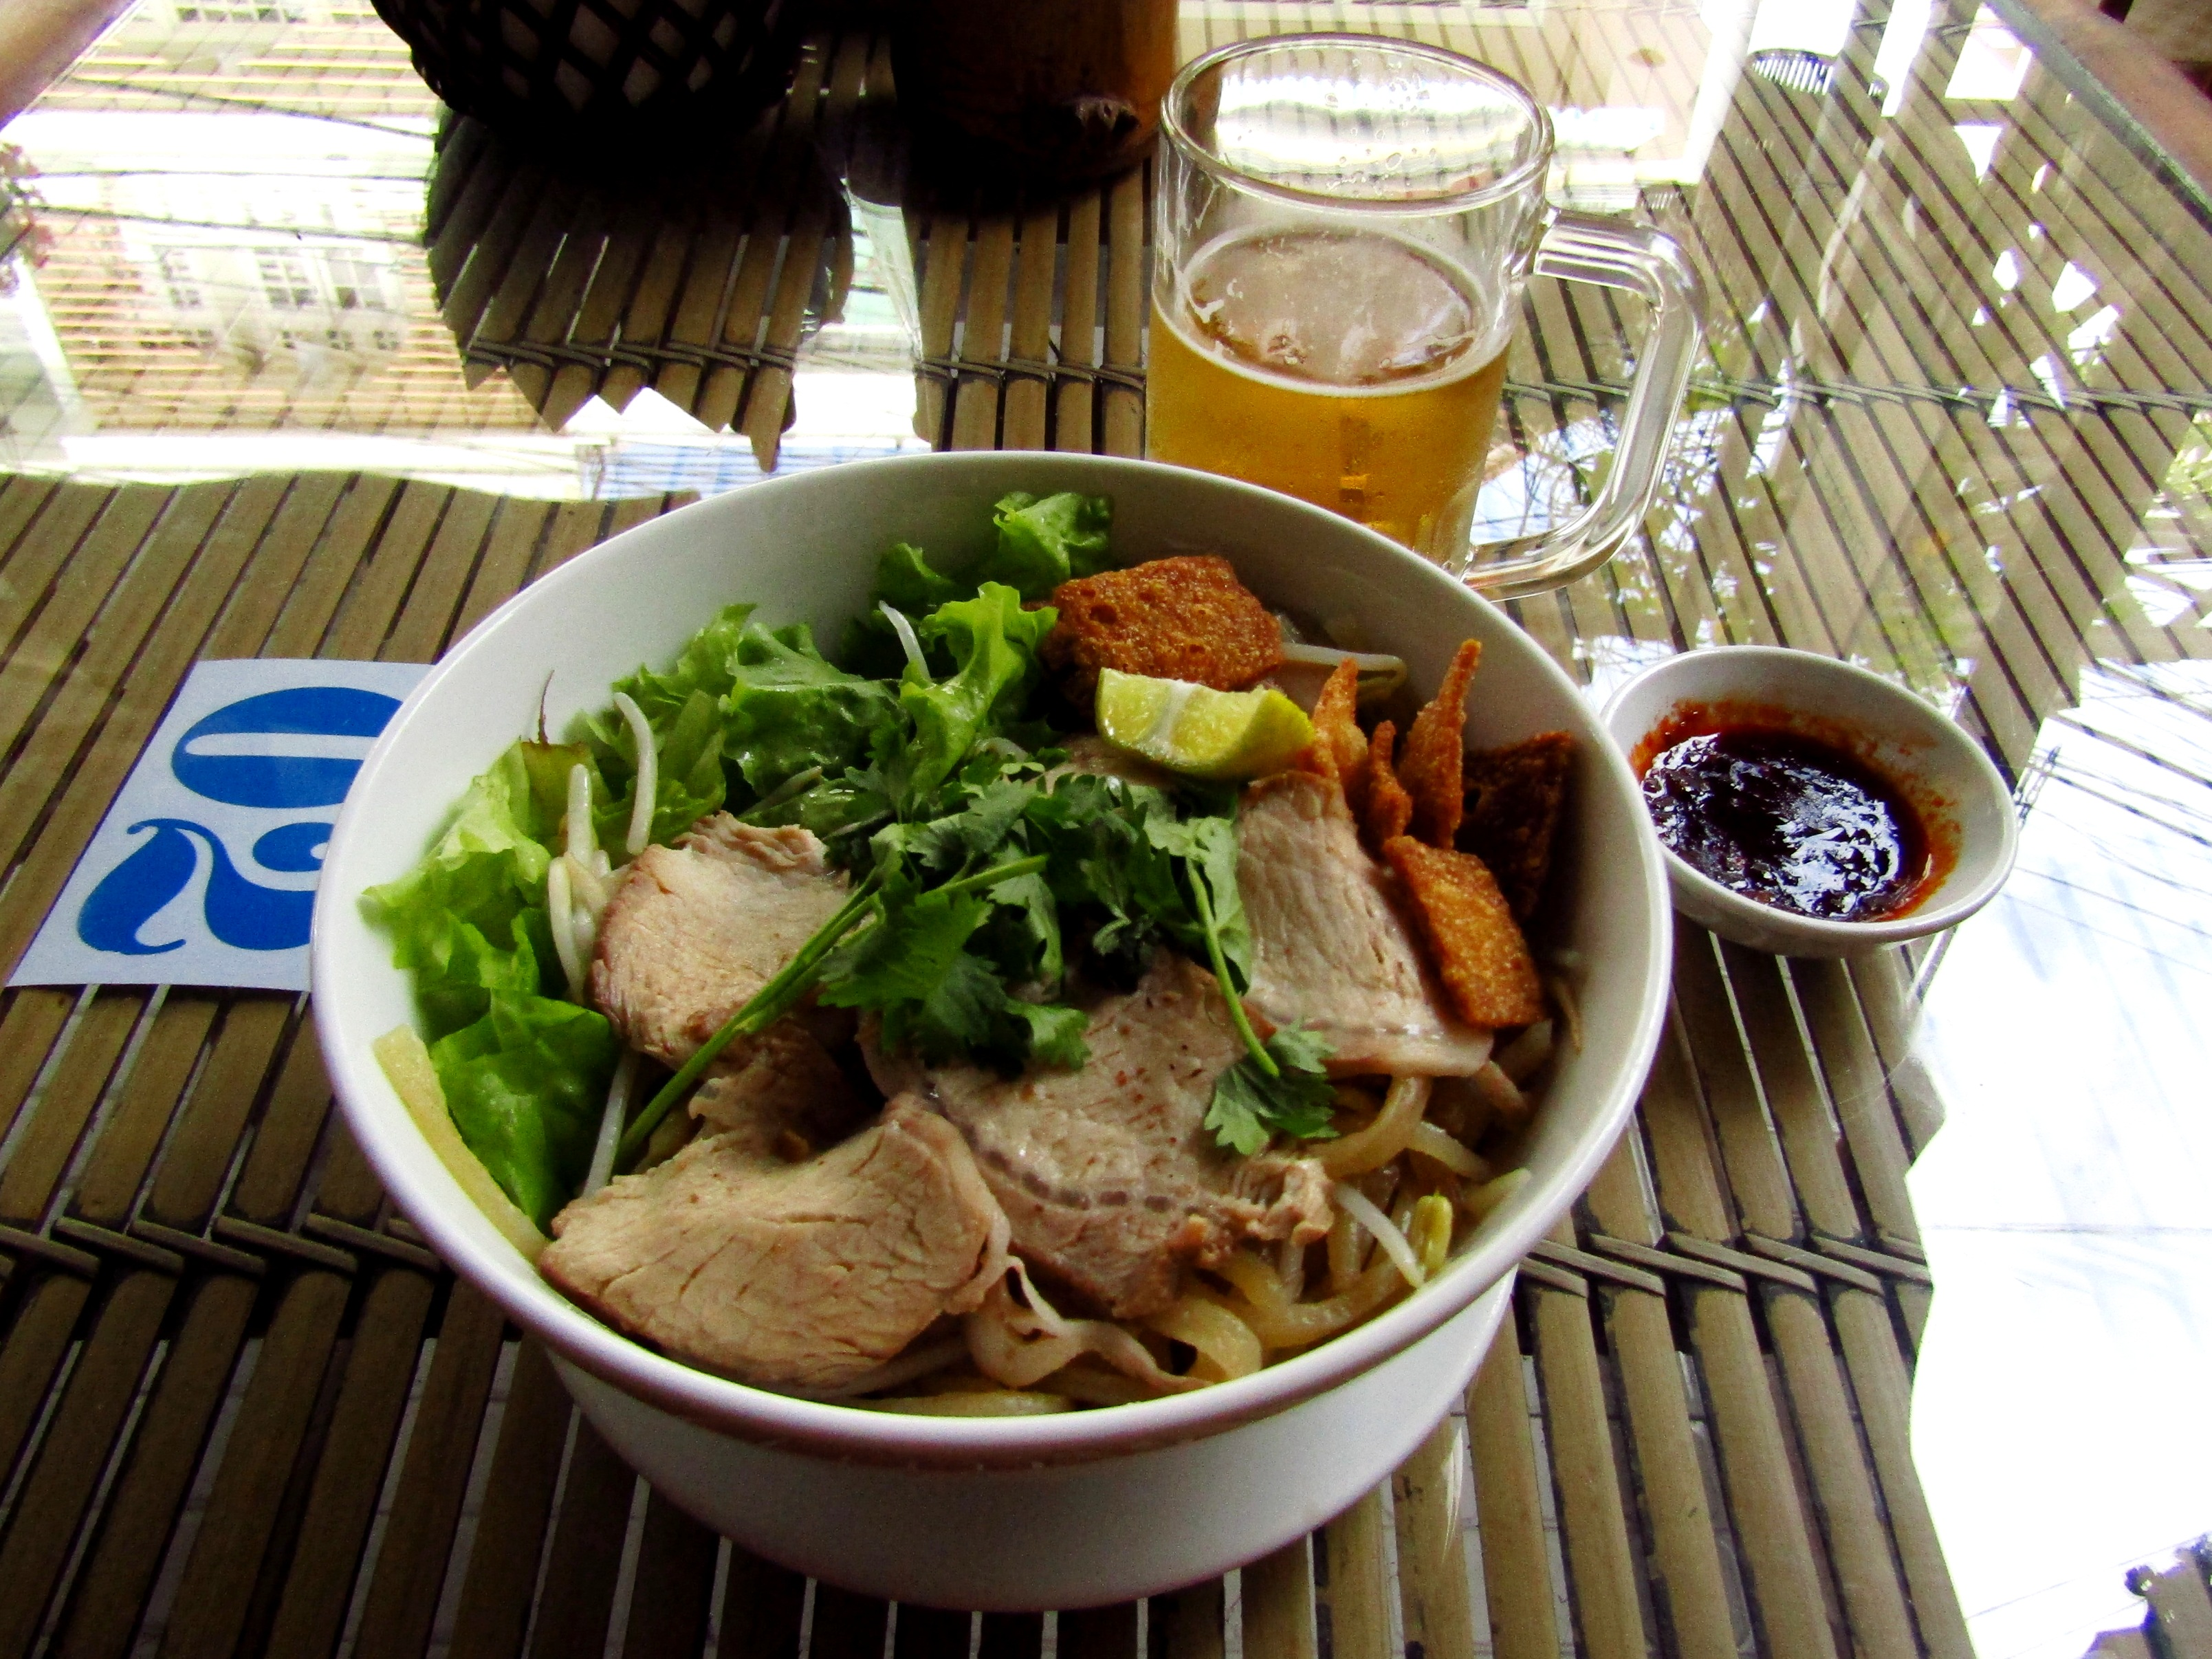 Cao lầu - the speciality of the Hoi An city